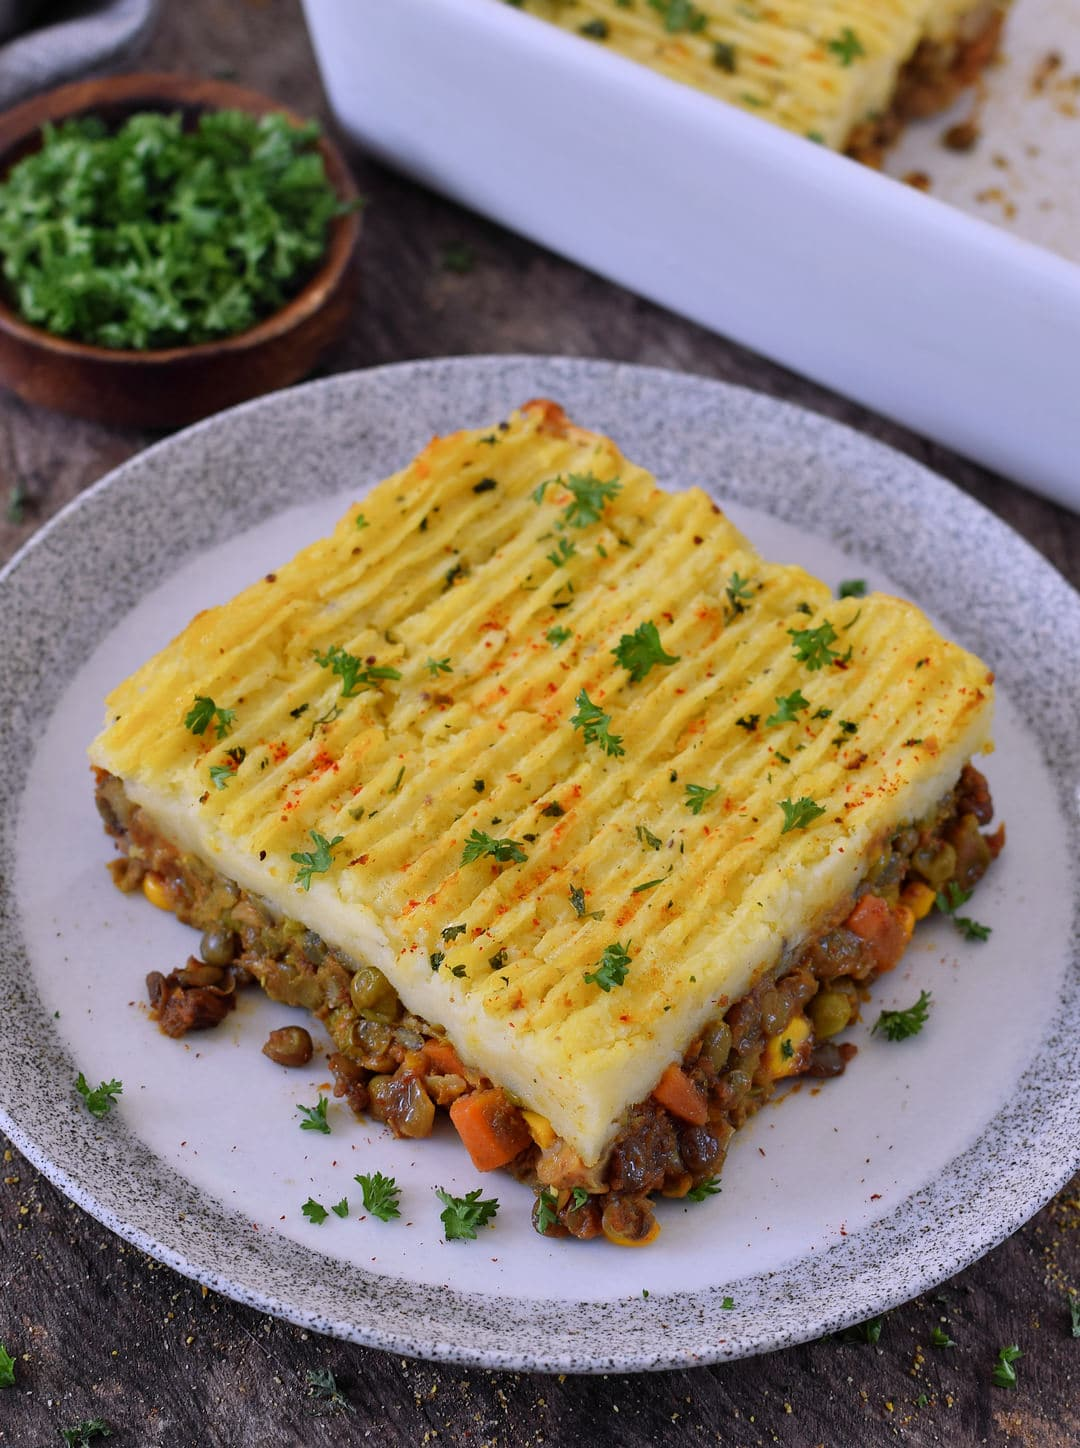 piece of a vegan shepherds pie on a plate